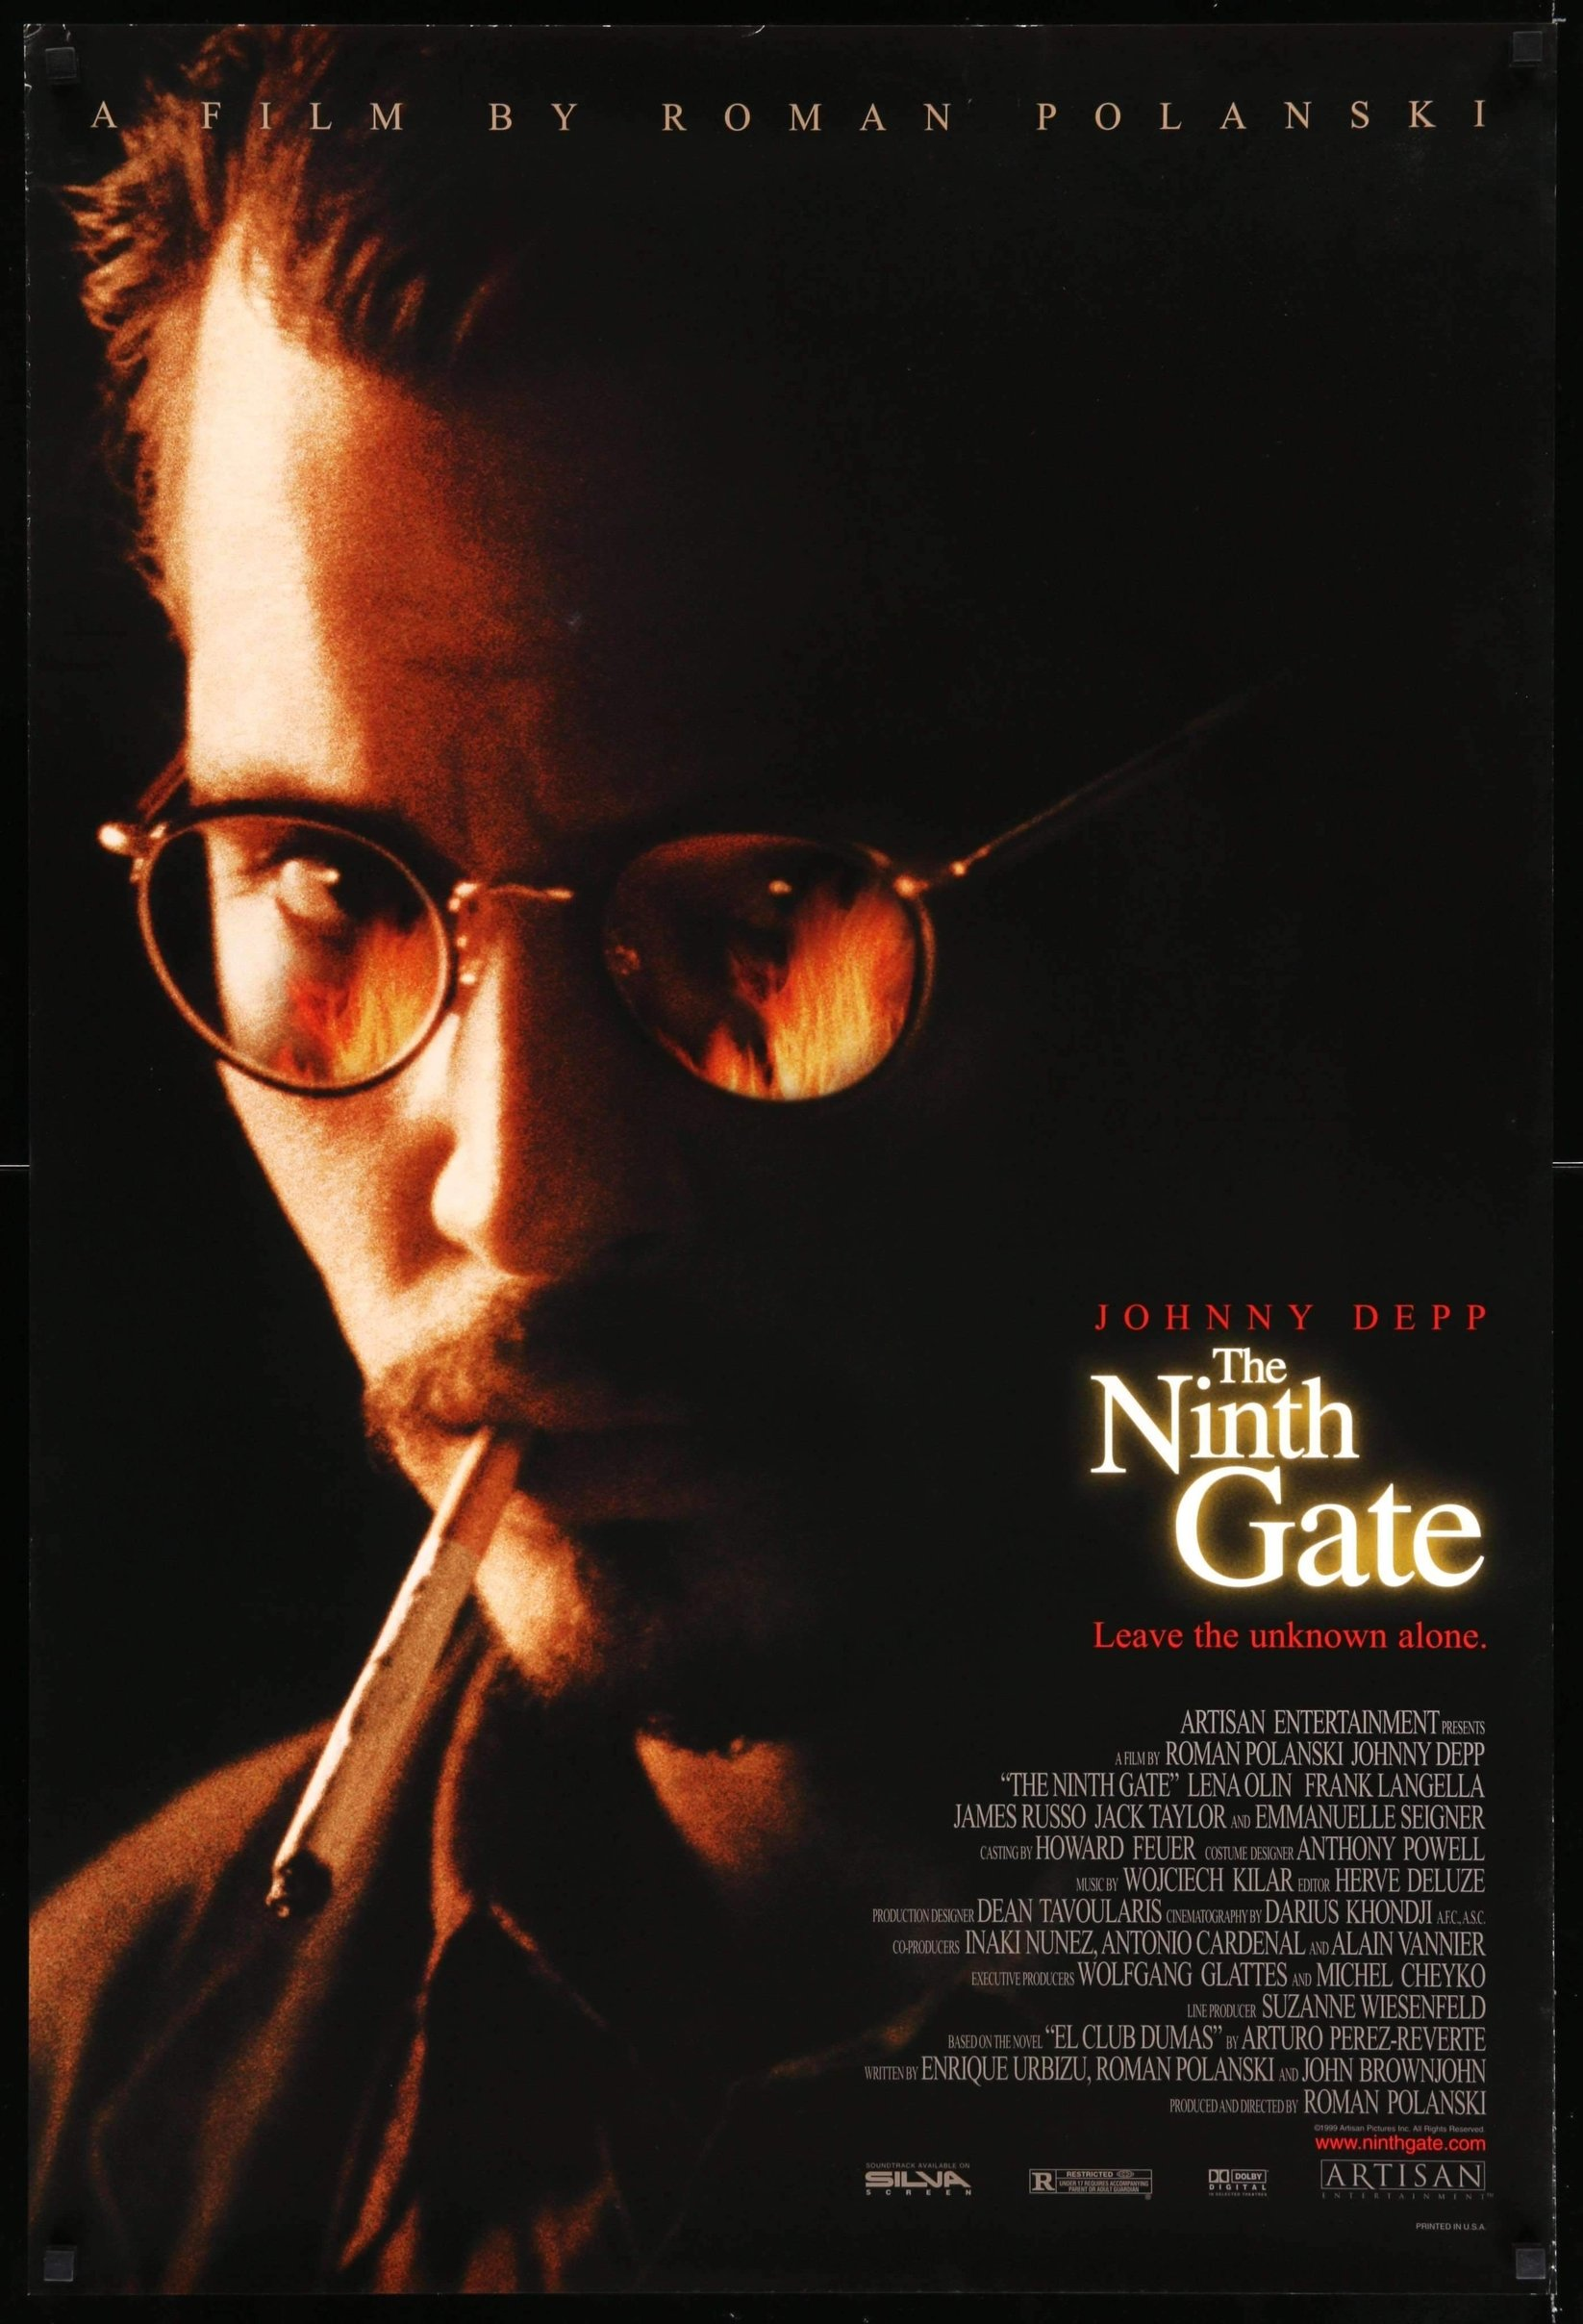 The Ninth Gate (1999) - Directed by: Roman PolanskiStarring: Johnny Depp, Frank Langella, Lena Olin, Emmanuelle SeignerRated: R for Some Violence and SexualityRunning Time: 2 h 13 mTMM Score: 3 stars out of 5STRENGTHS: Story, DirectingWEAKNESSES: Pacing, Tone